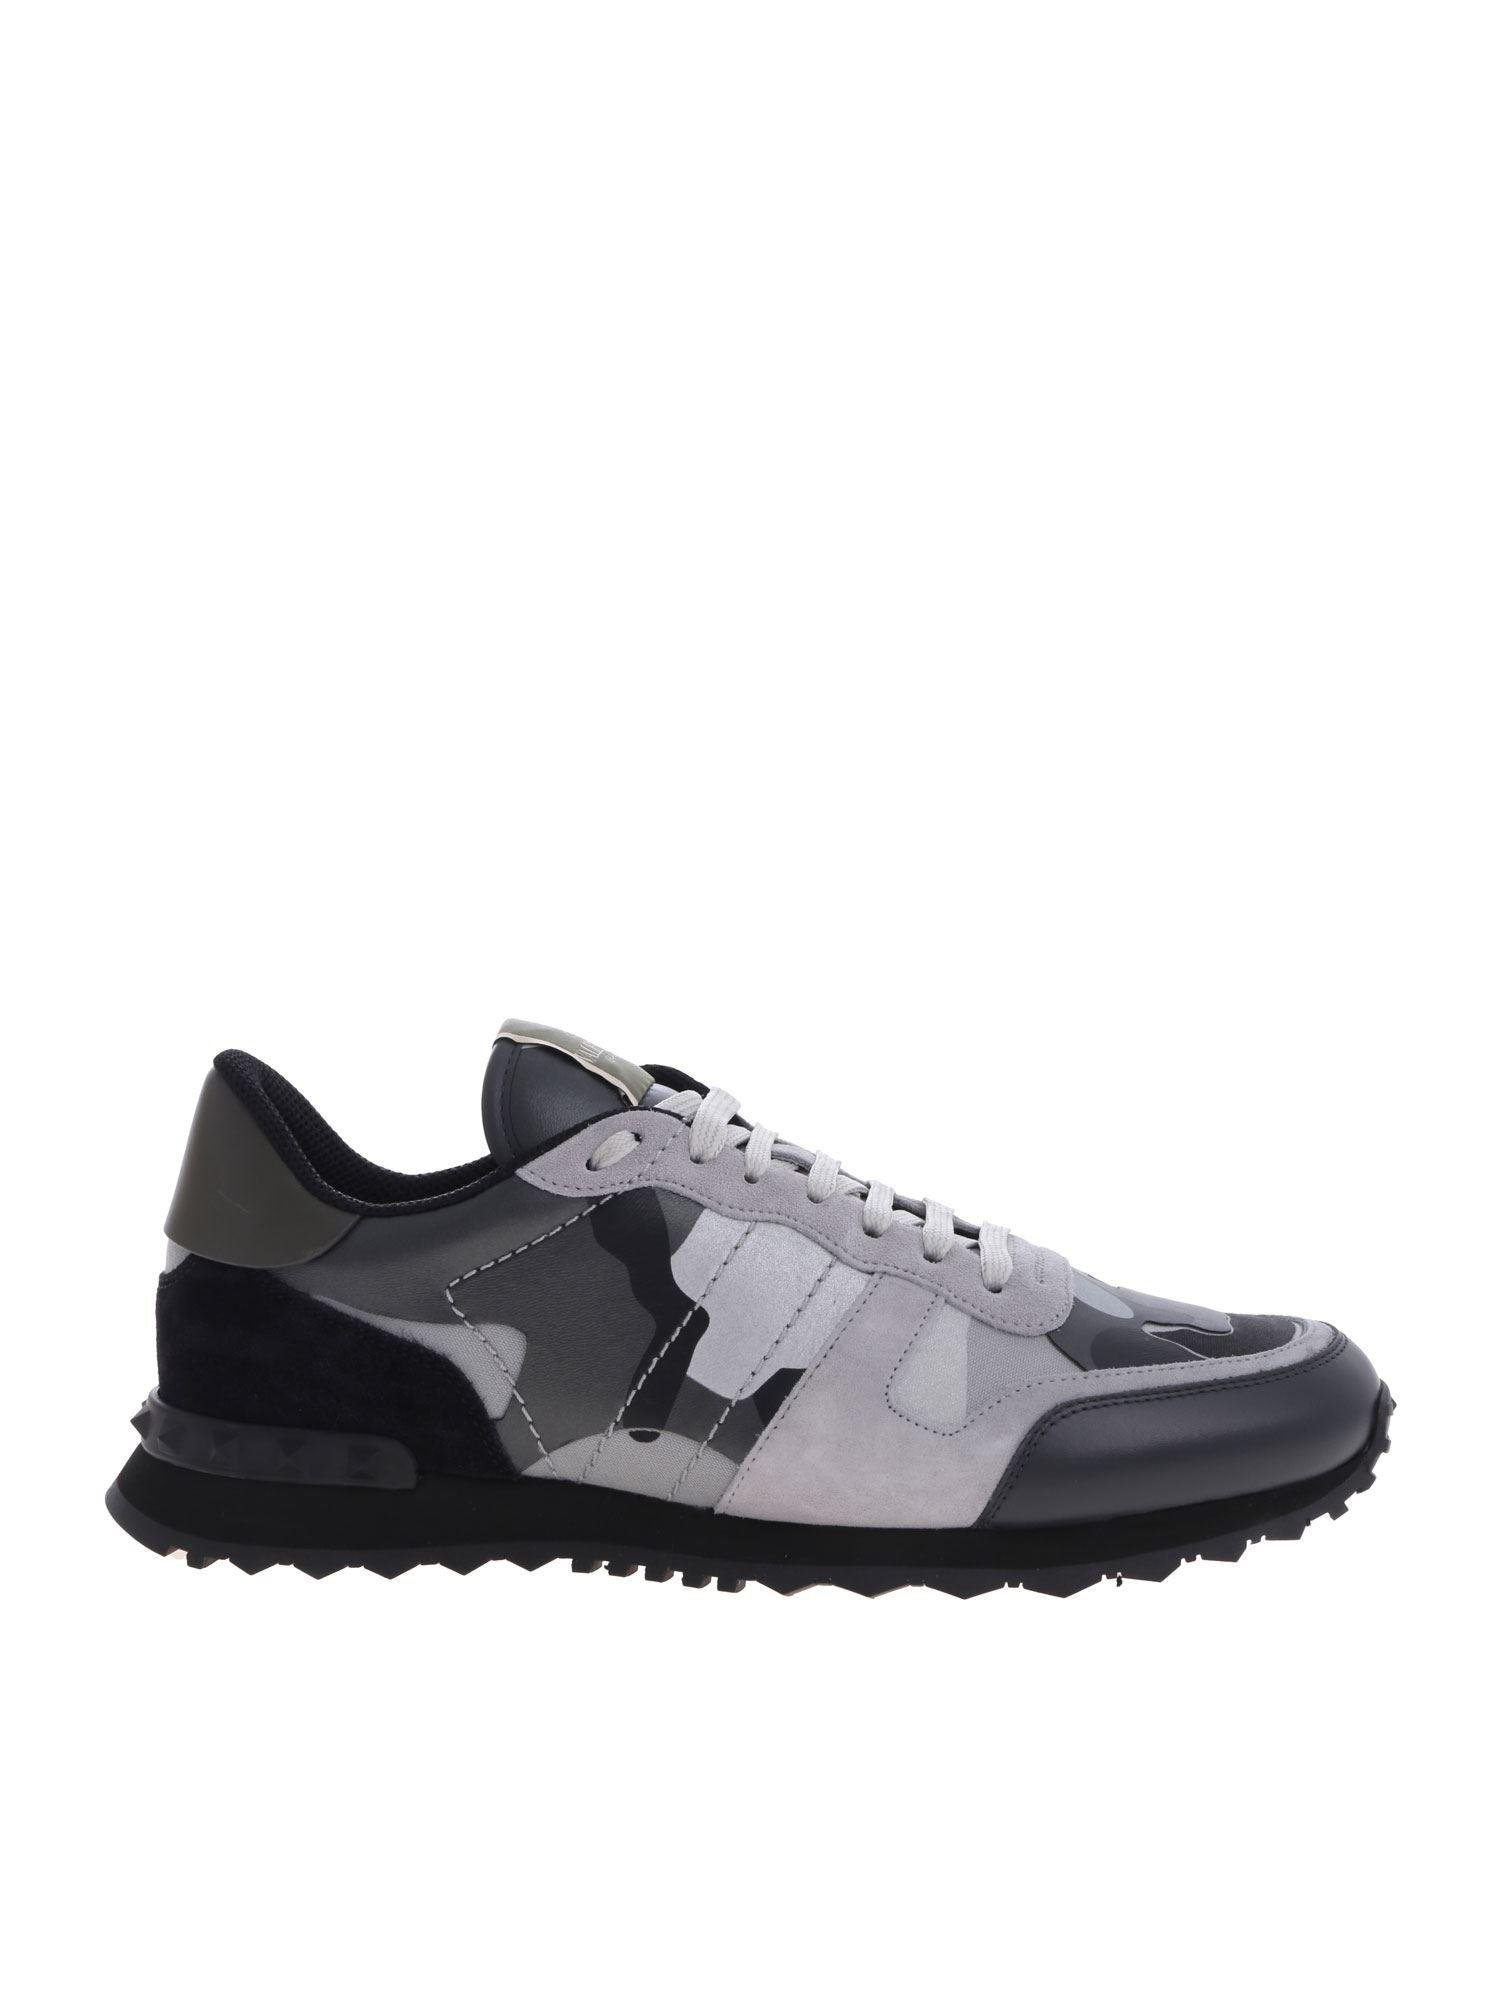 8a0b0fbfe2a5a Lyst - Valentino Rockrunner Camuflage Sneakers for Men